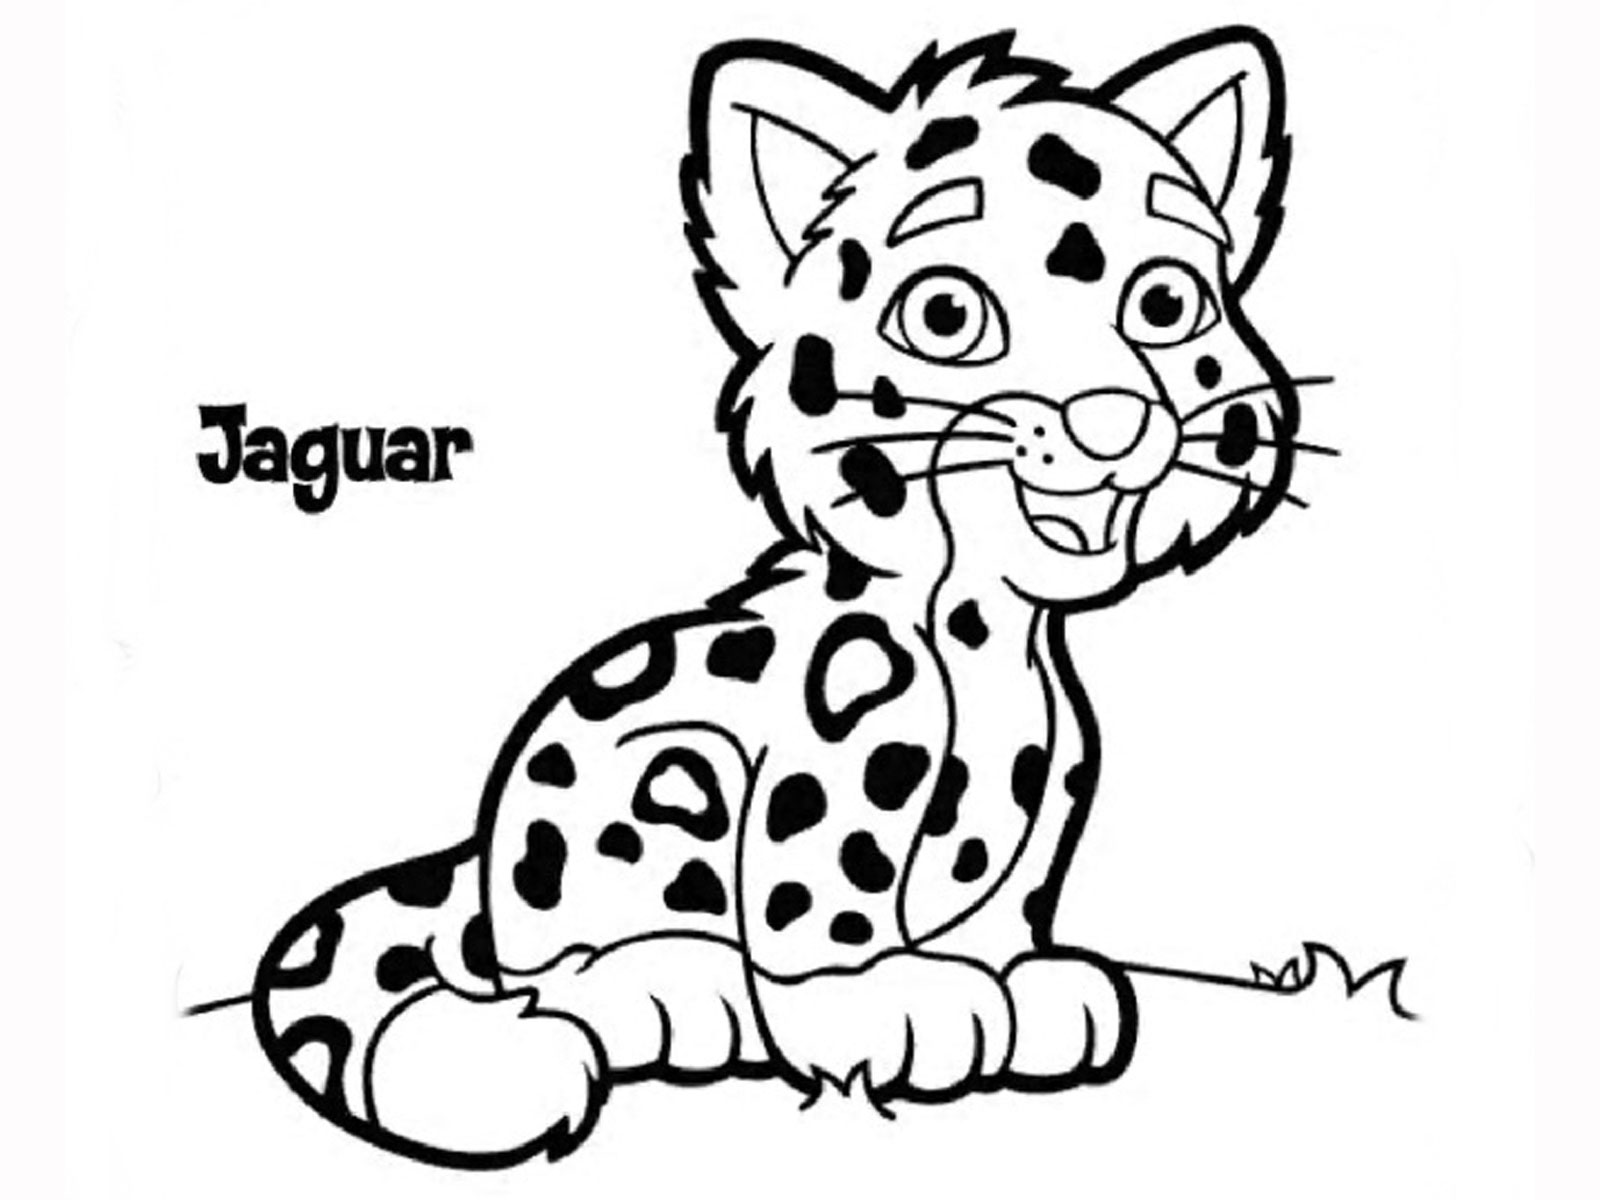 Jaguar Cartoon